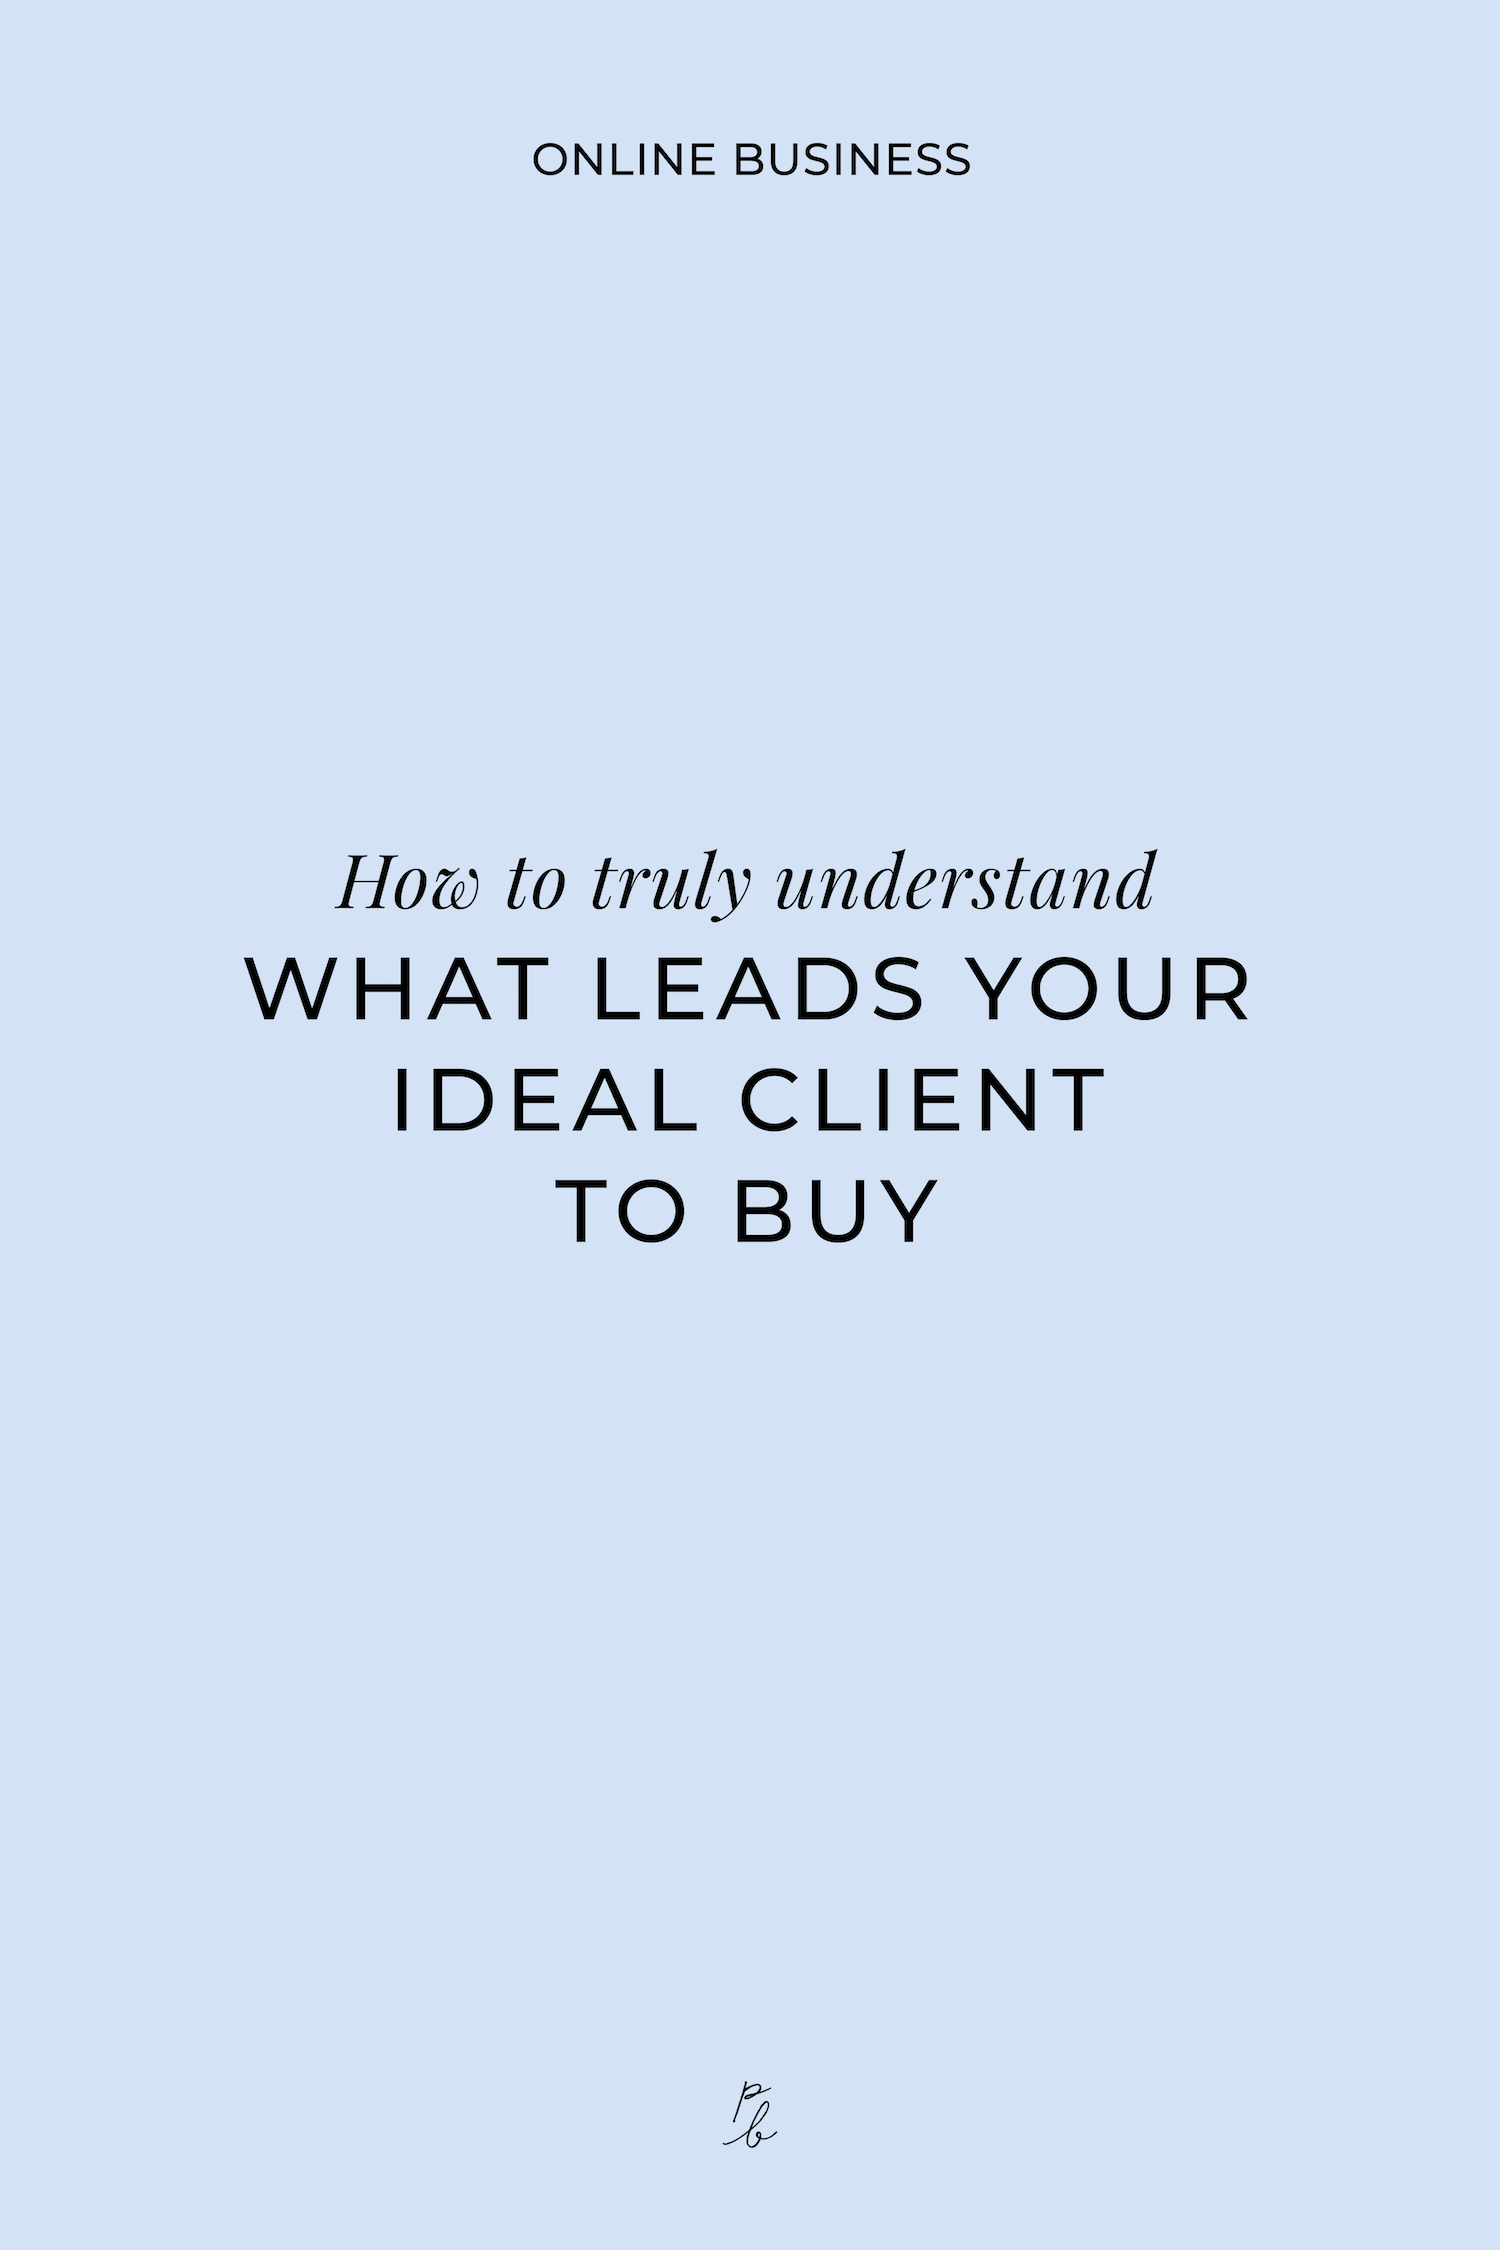 How to truly understand what leads your ideal client to buy-03.jpeg